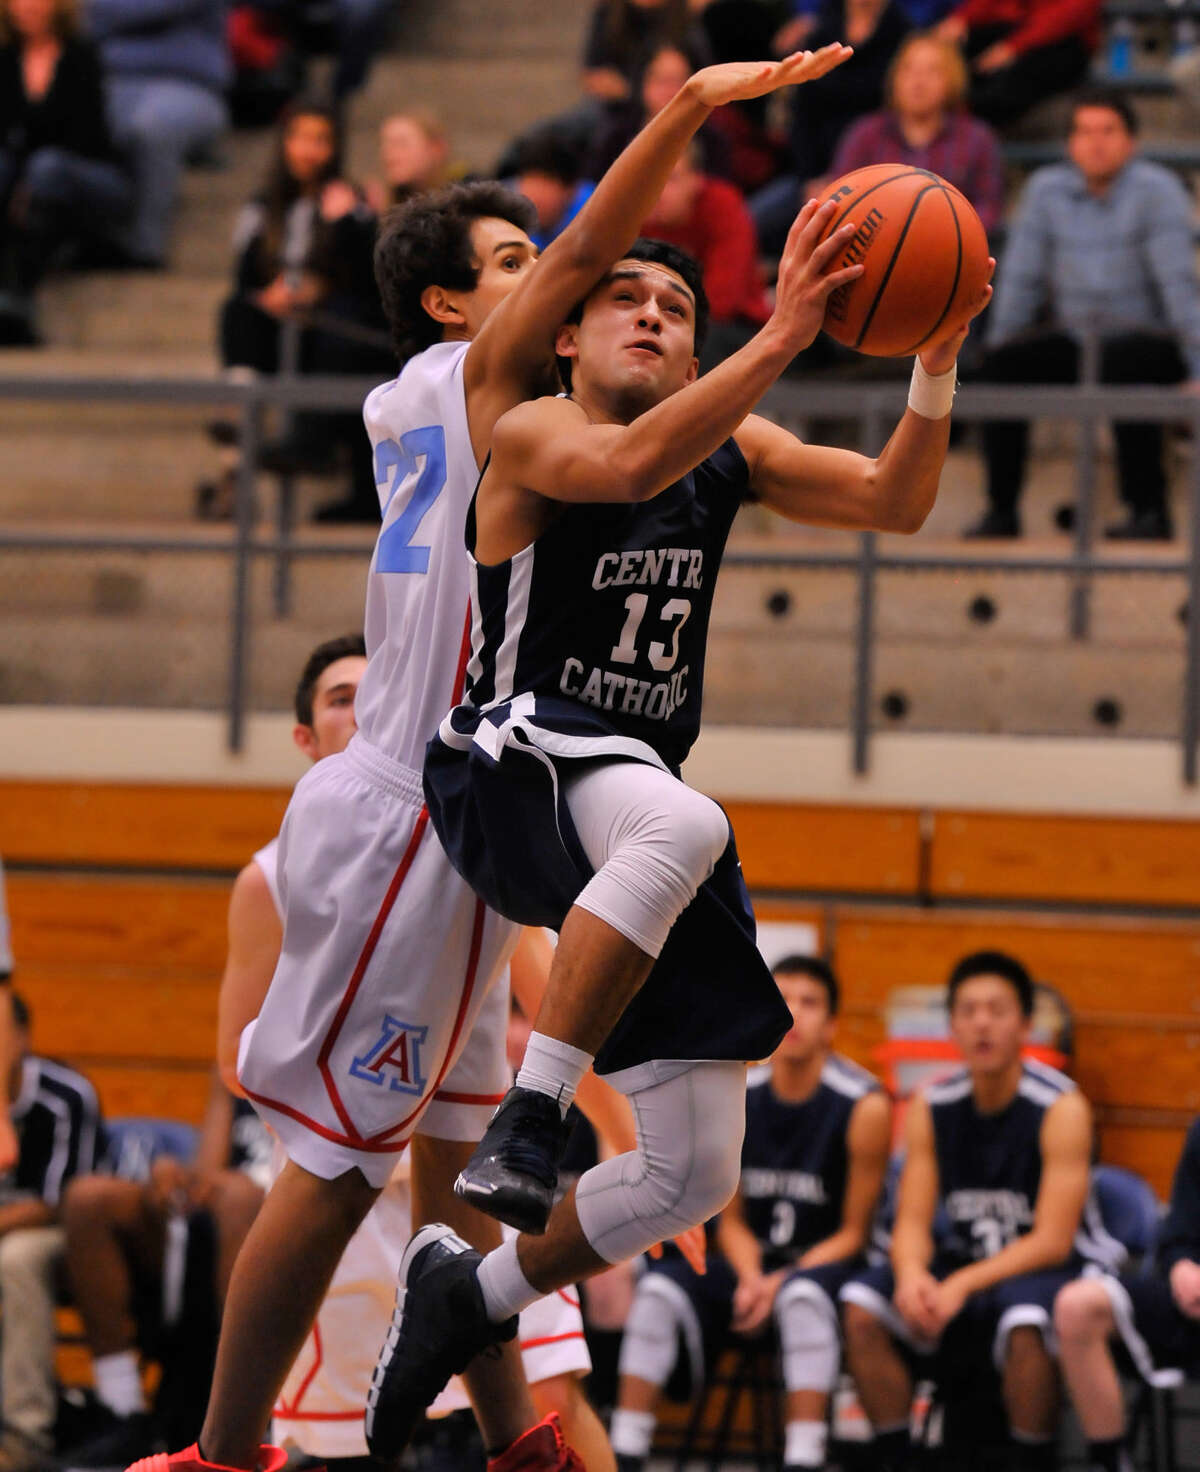 Central Catholic's P.J. Escobar (25 points) tries to score around Antonian's Christian Rodriguez at Taylor Field House during a game Feb. 6, 2014. The Buttons won 66-55.